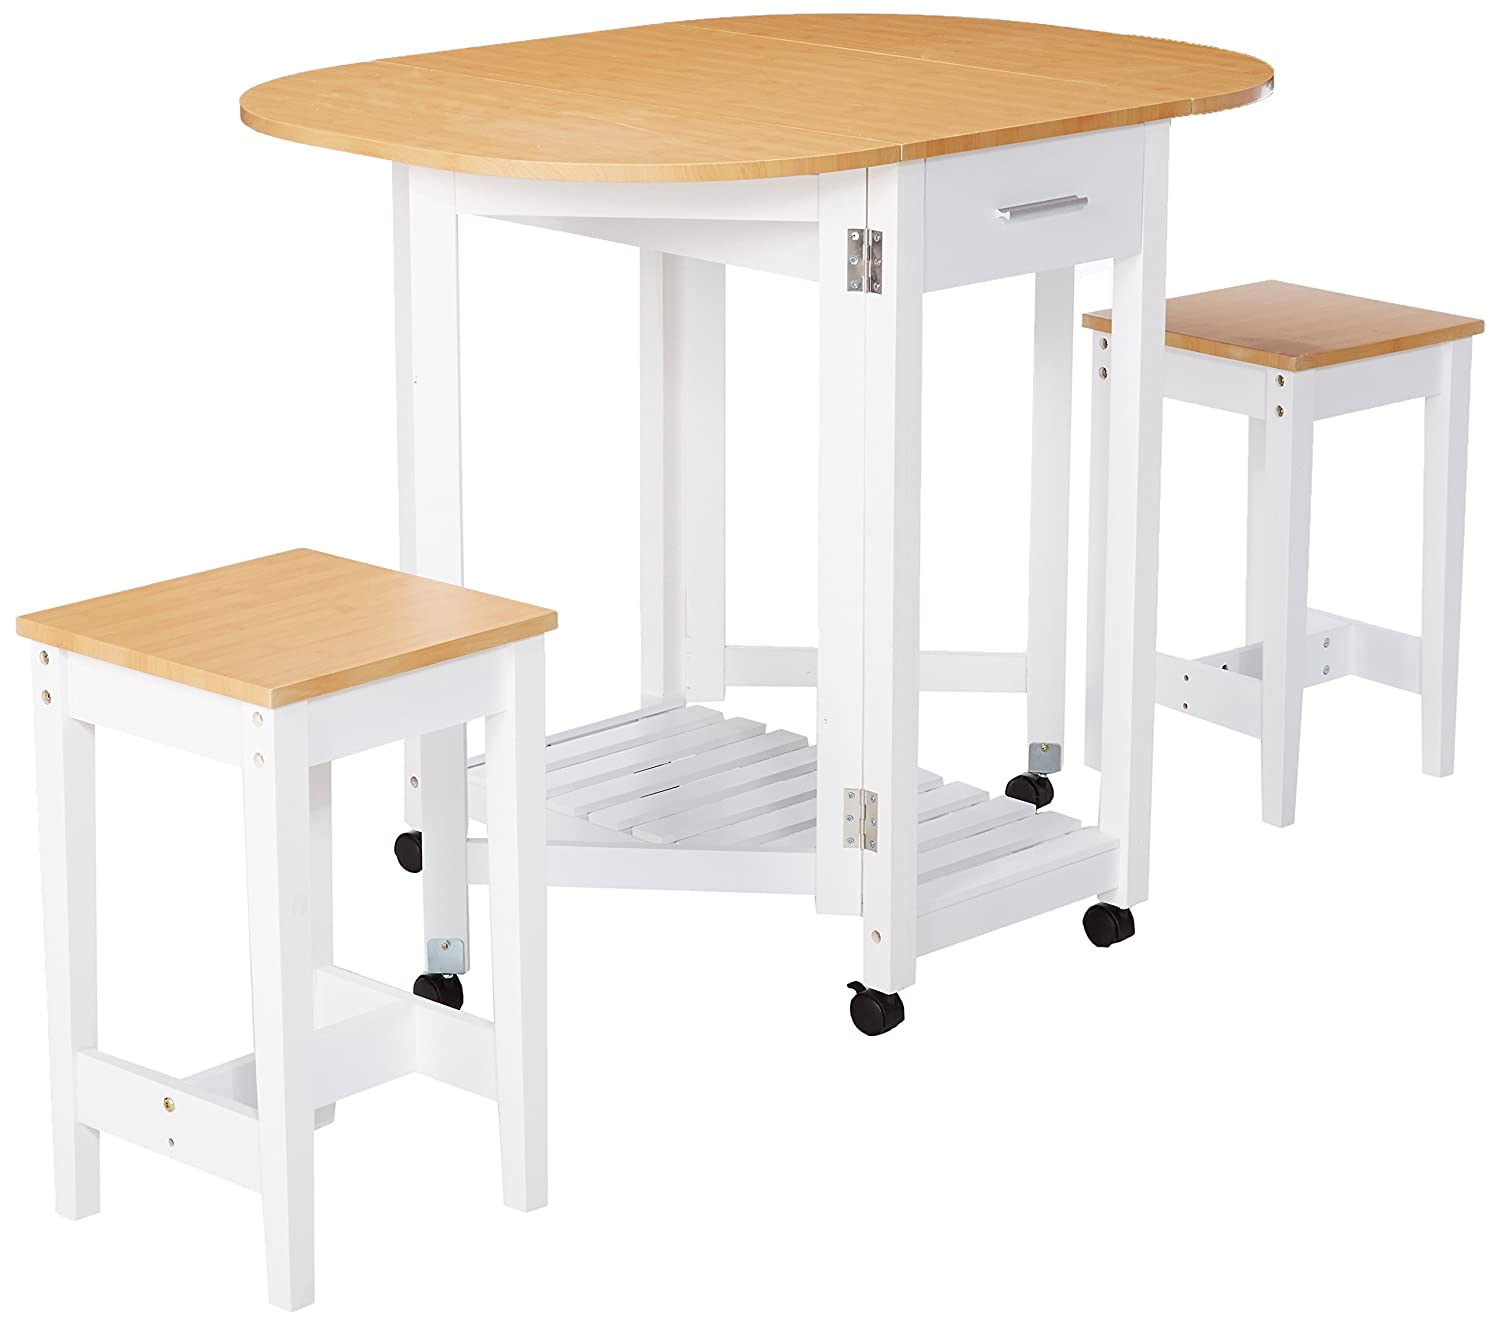 Basicwise QI003279.3 3 Piece Kitchen Breakfast Bar Set with casters, Drop Down Island Table with 2 Stools